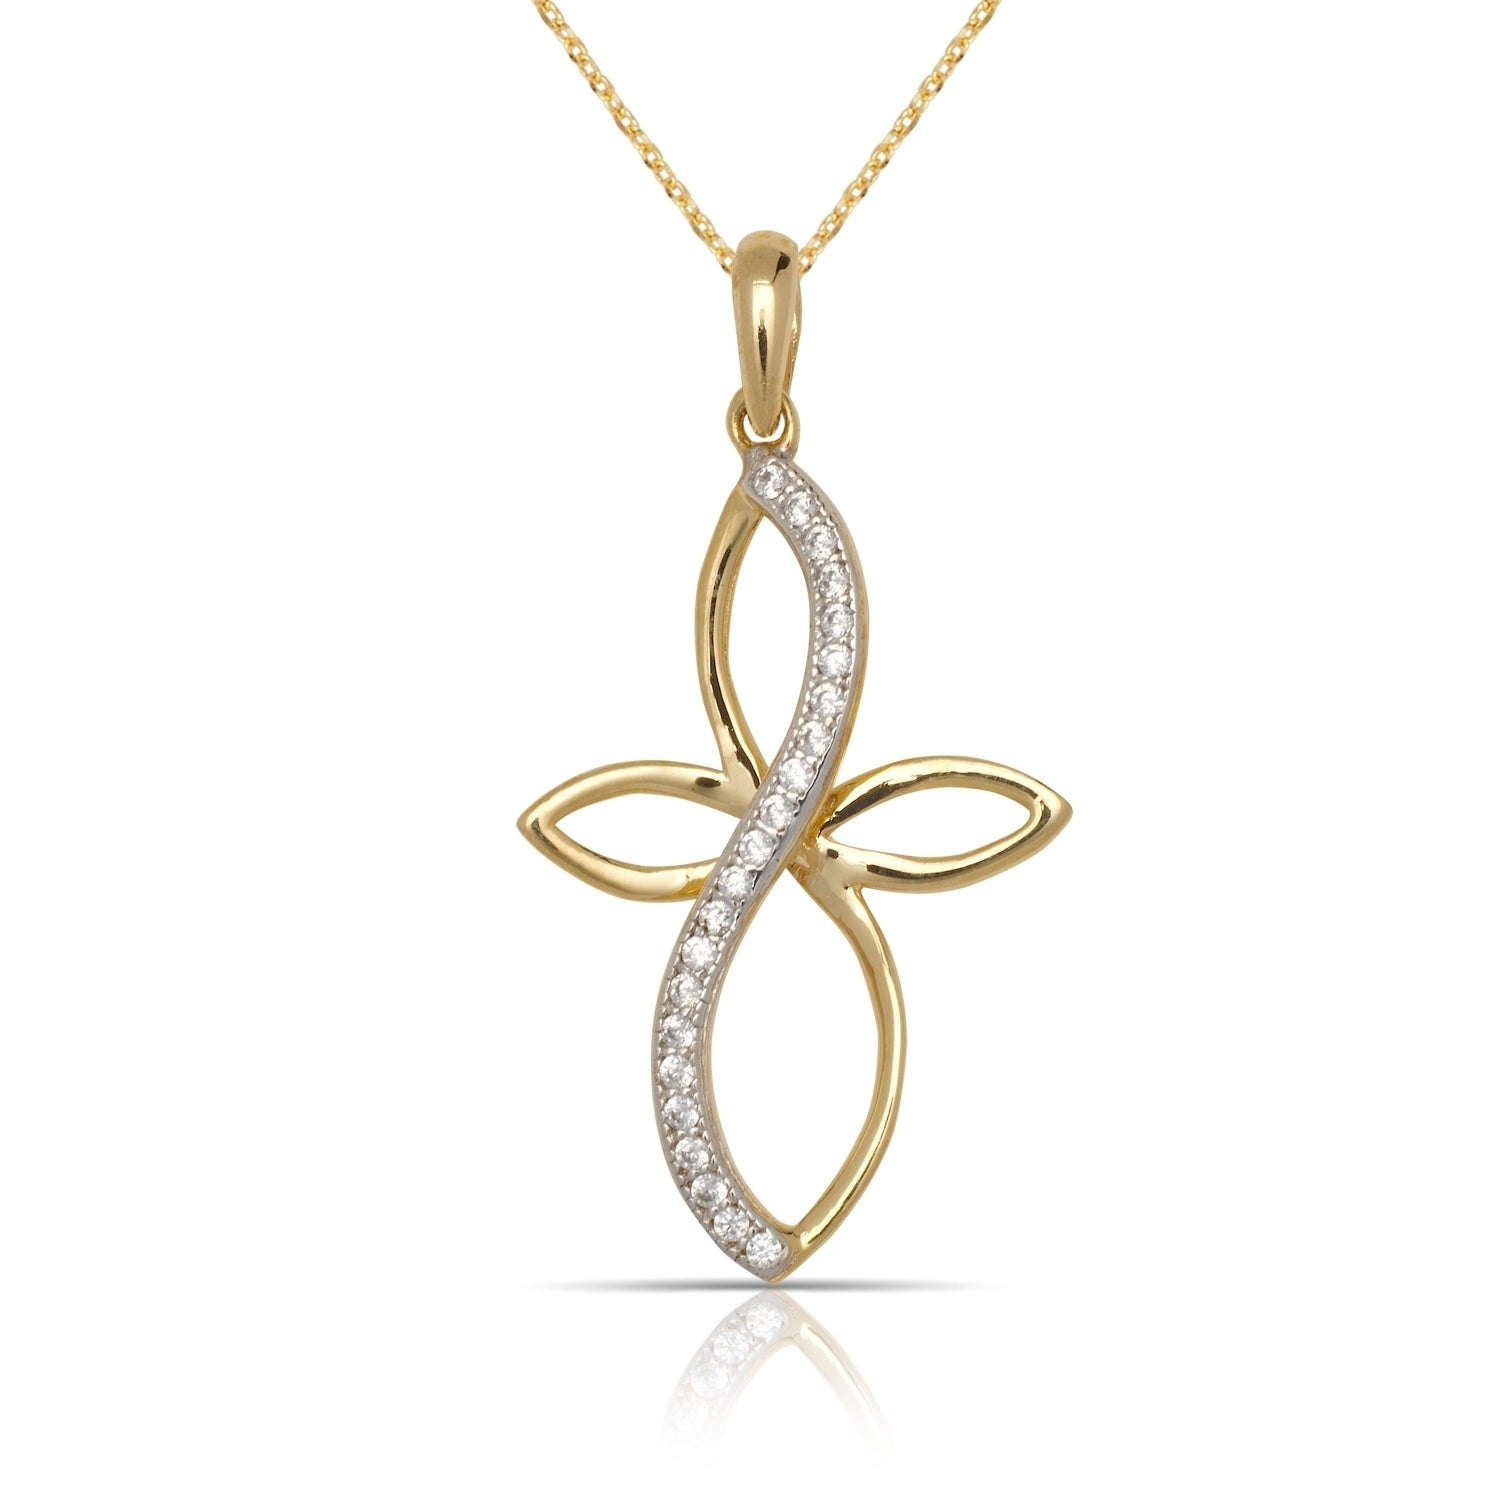 4abec3f5ebe18d 10K Yellow Gold Cubic Zirconia Infinity Ribbon Cross Pendant Necklace  (16-Inch)